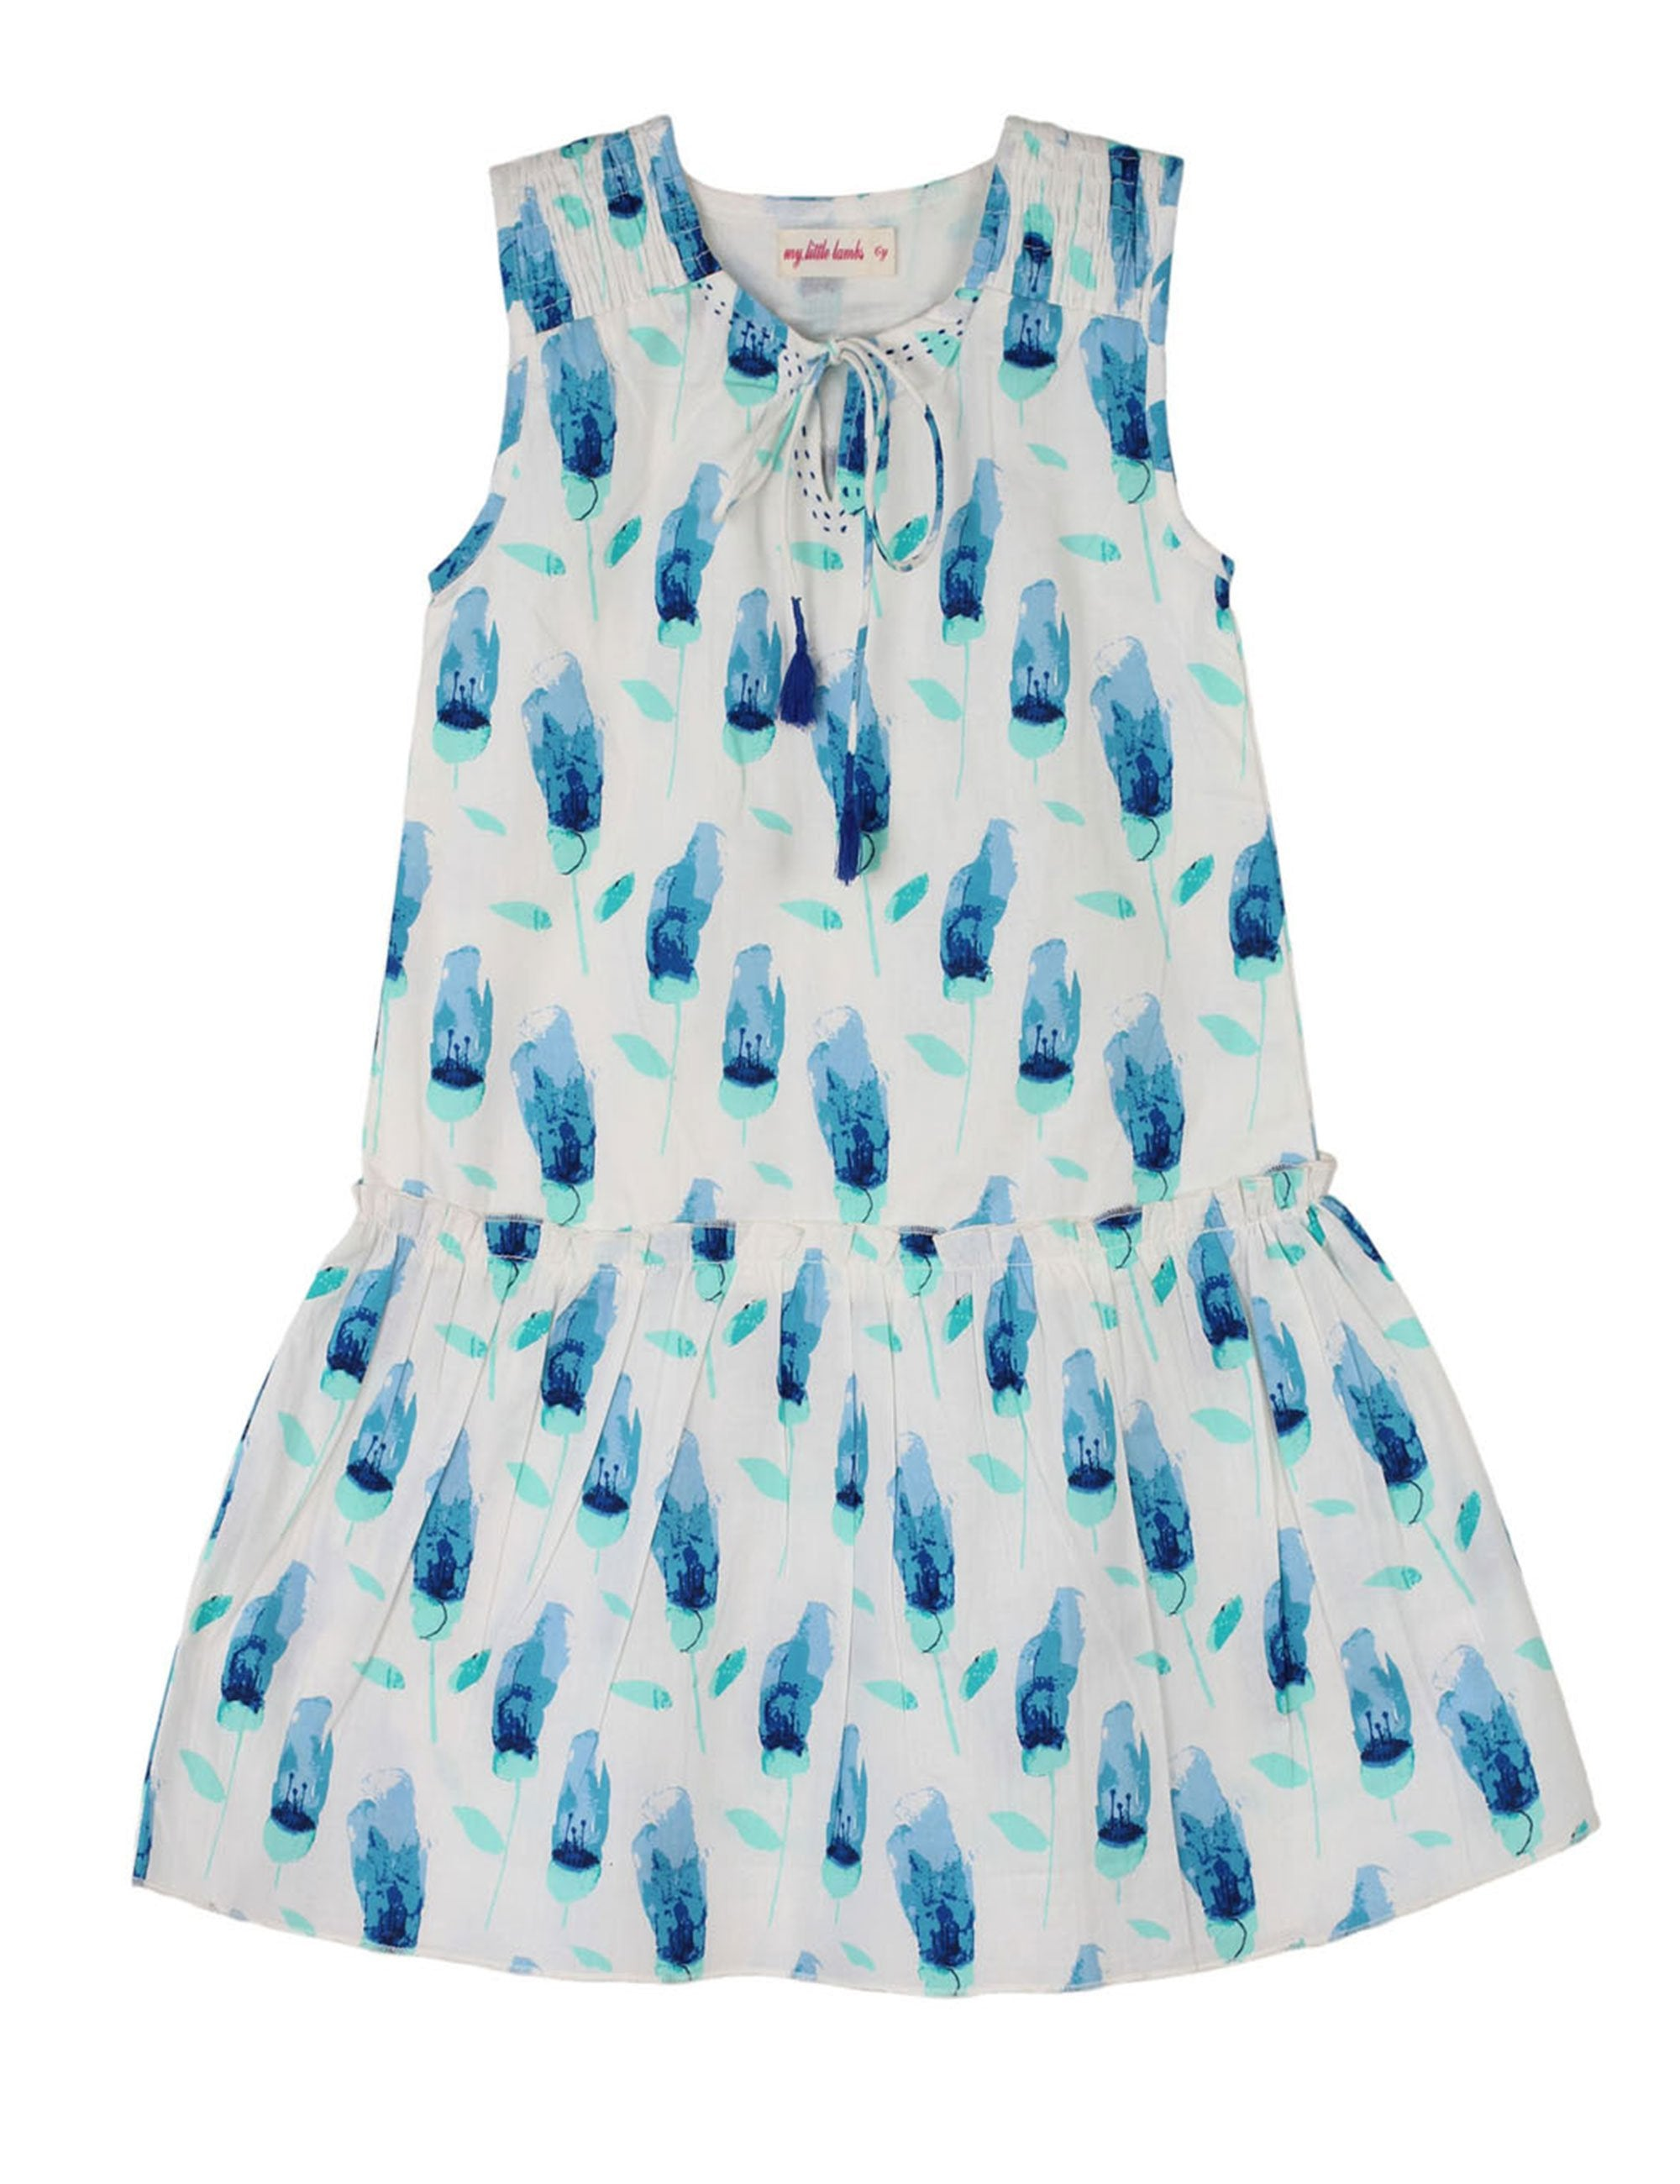 Printed Drop Waist Dress in White and Blue Colour for Girls